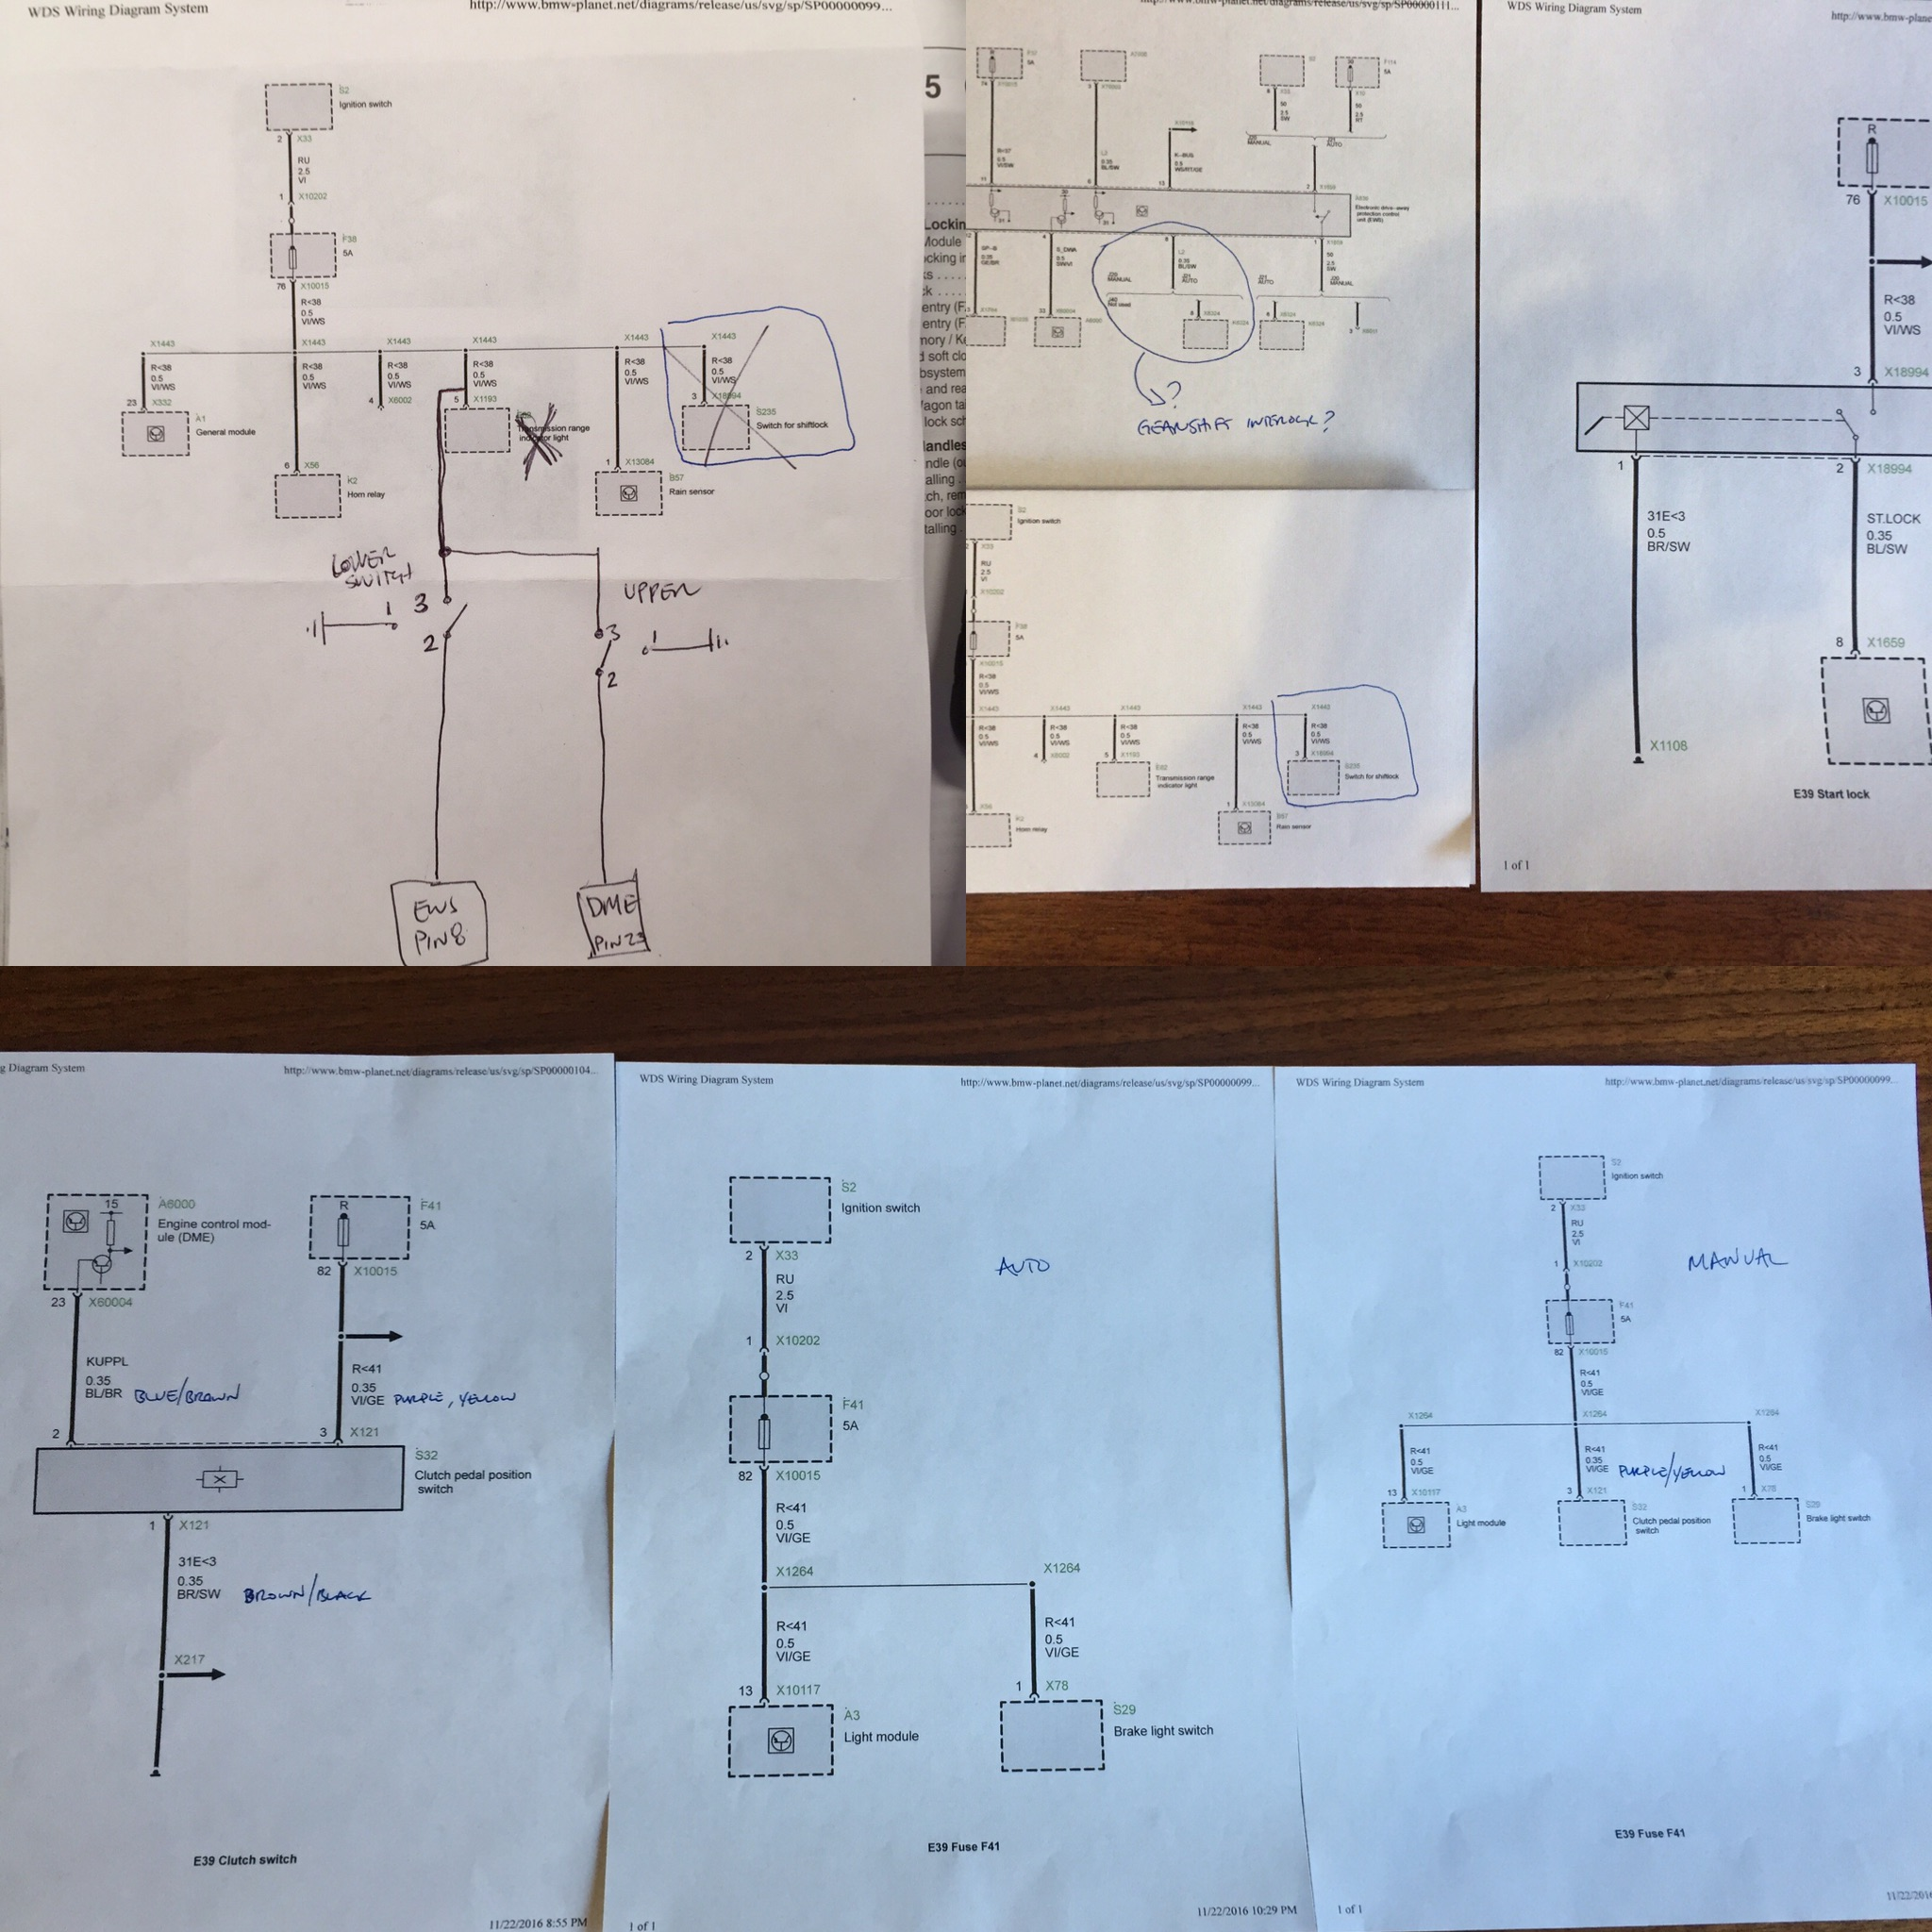 Marvelous Ditch Witch 7020 Wiring Diagram Gallery - Wiring ...